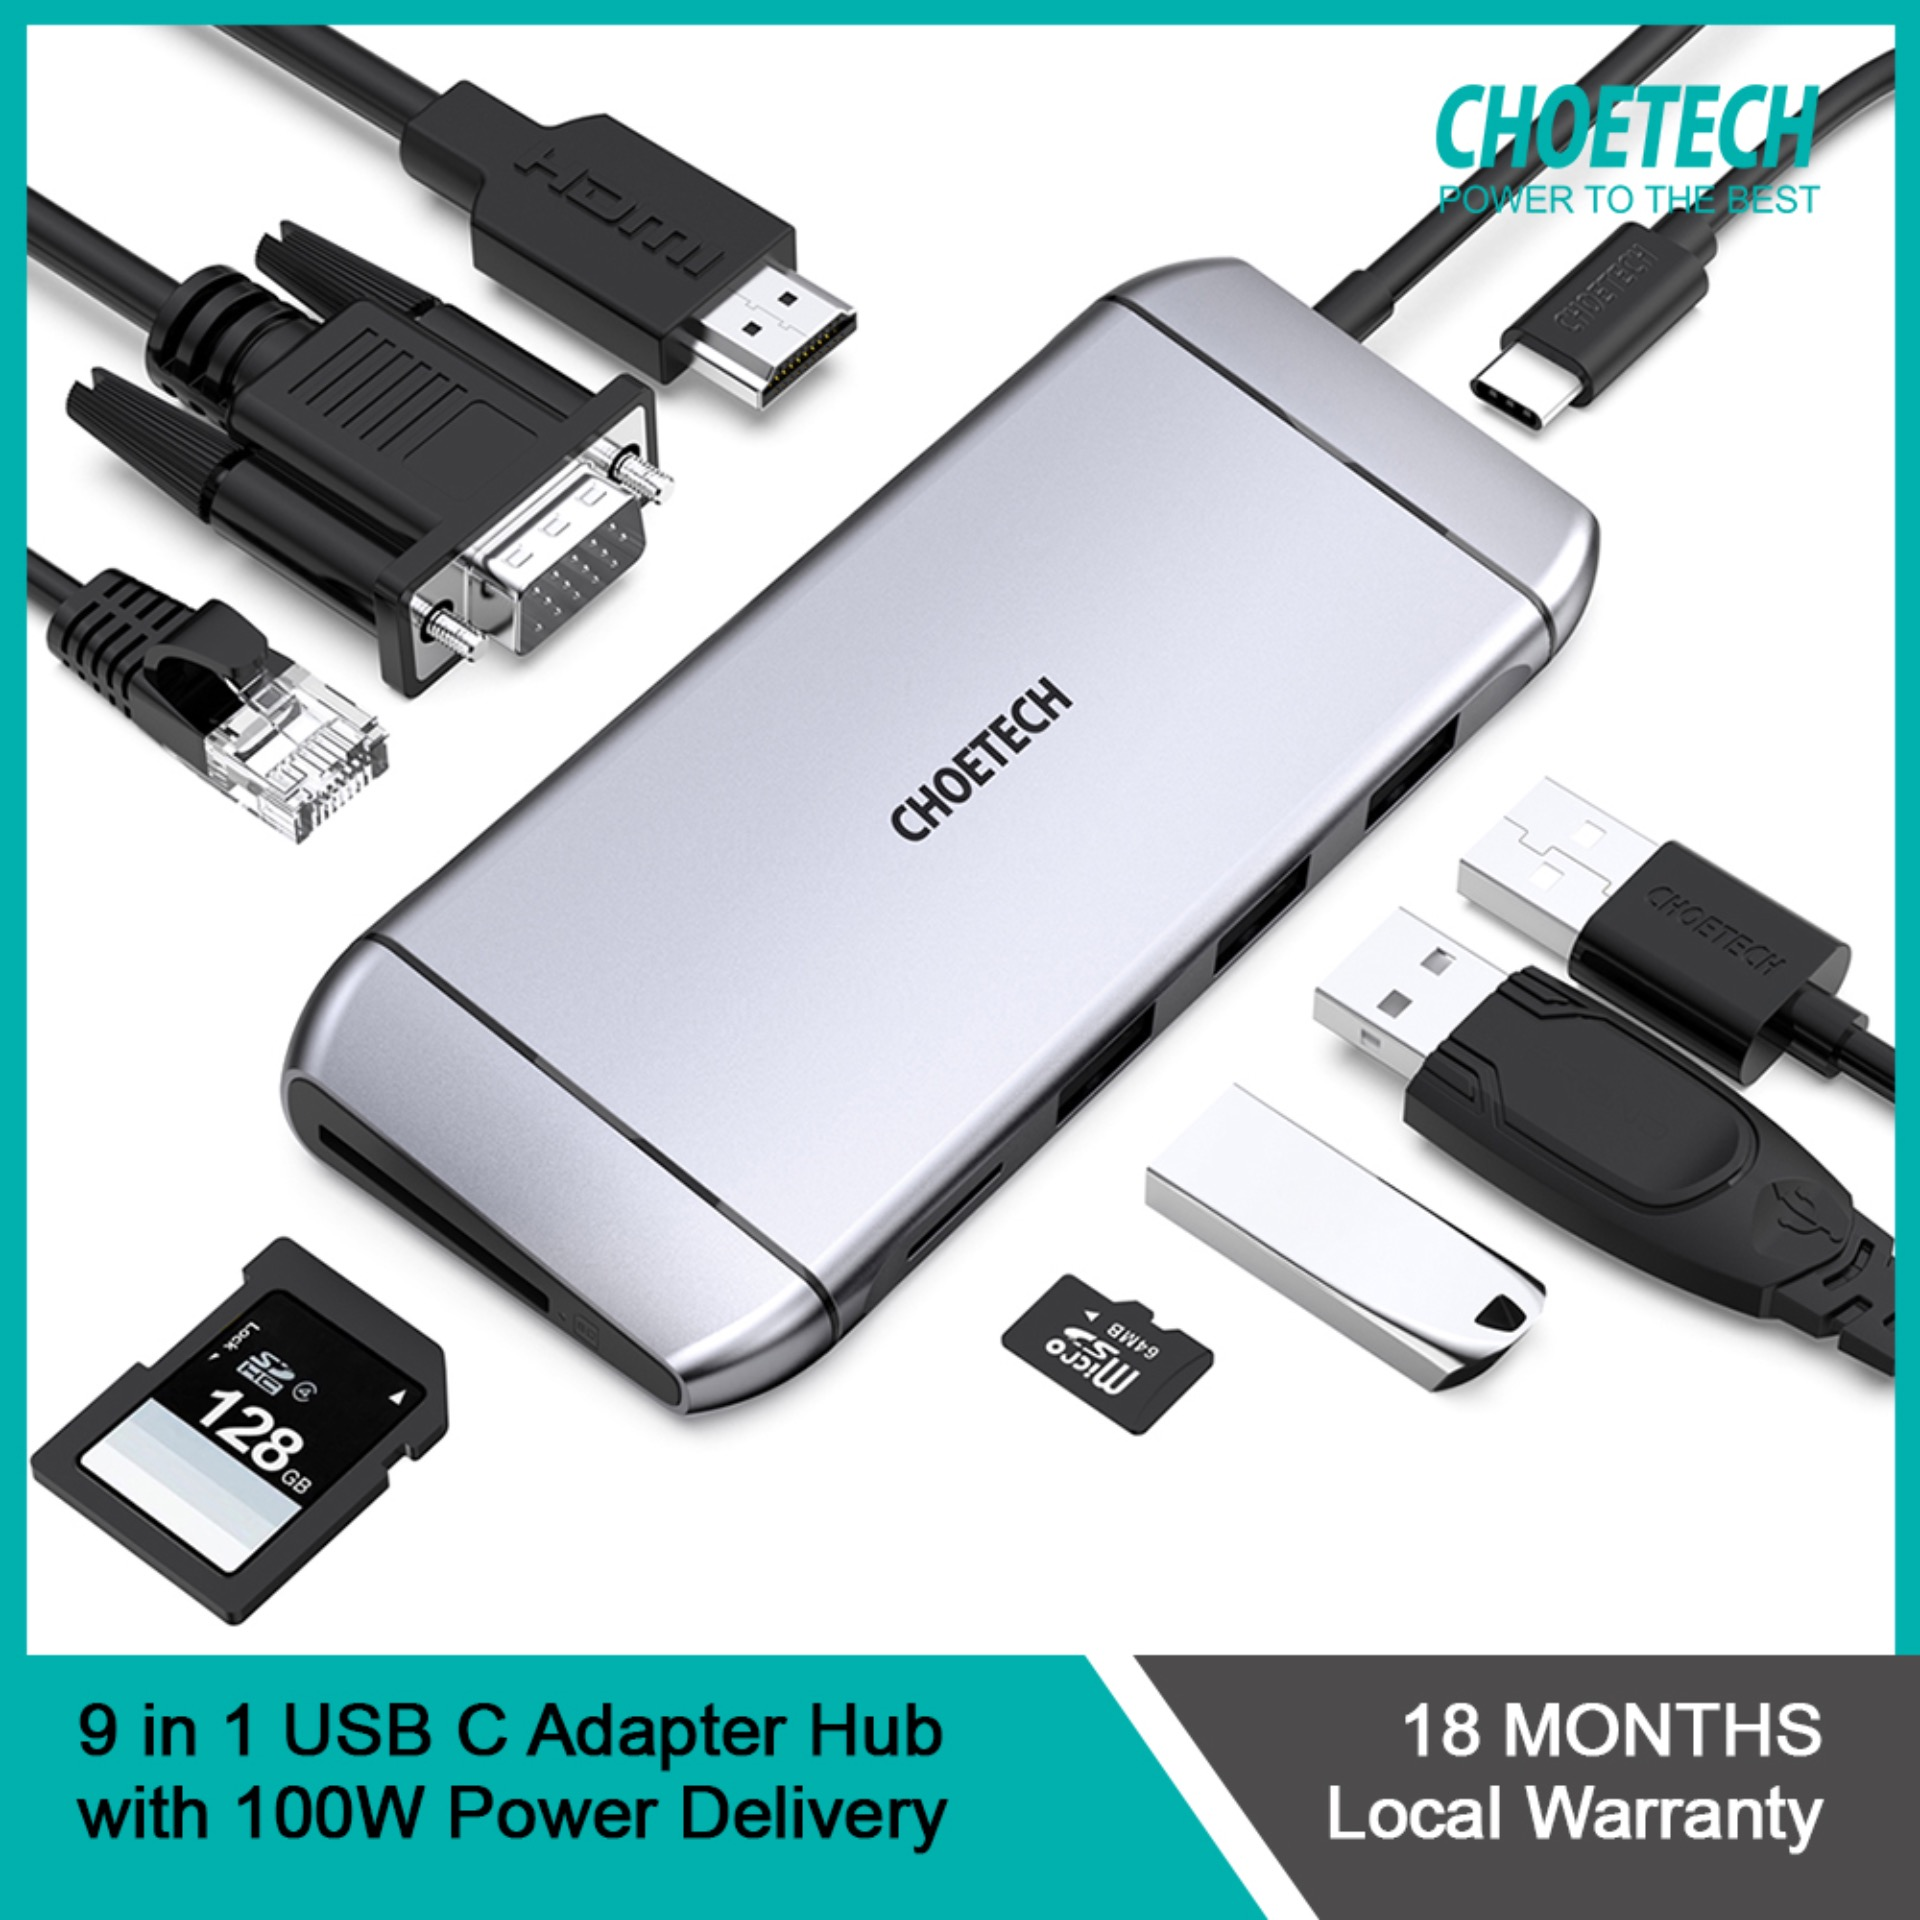 CHOETECH 9 in 1 USB C Adapter Hub with 4K HDMI, 100W PD Power, 3 USB 3.0, RJ45 Ethernet, 60HZ VGA, SD/TF Card Reader